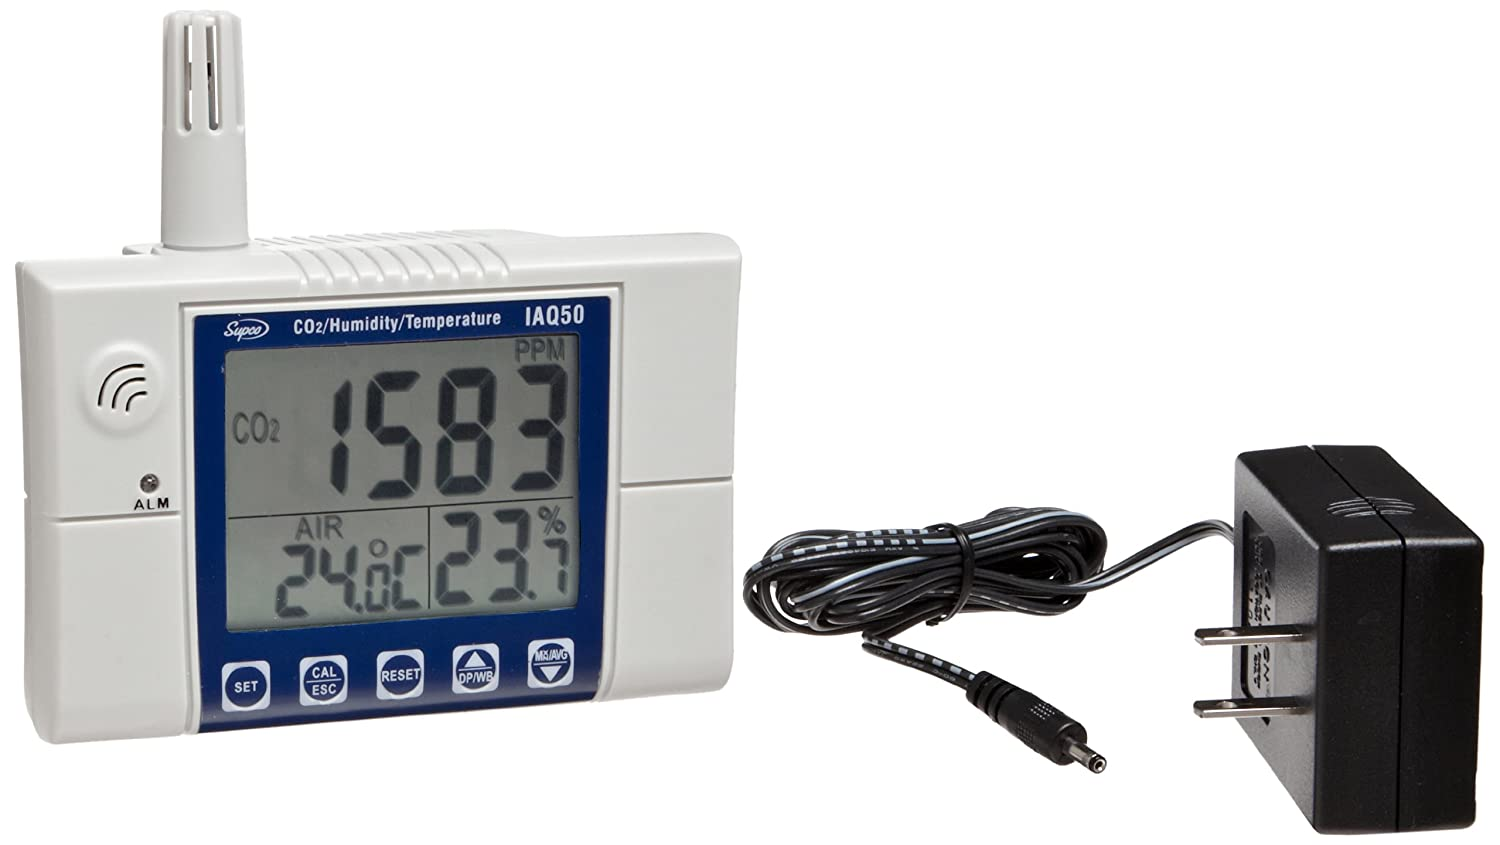 Supco IAQ50 Free Shipping Cheap Max 55% OFF Bargain Gift CO2 Carbon Dioxide Air Meter Indoor Monitor Quality